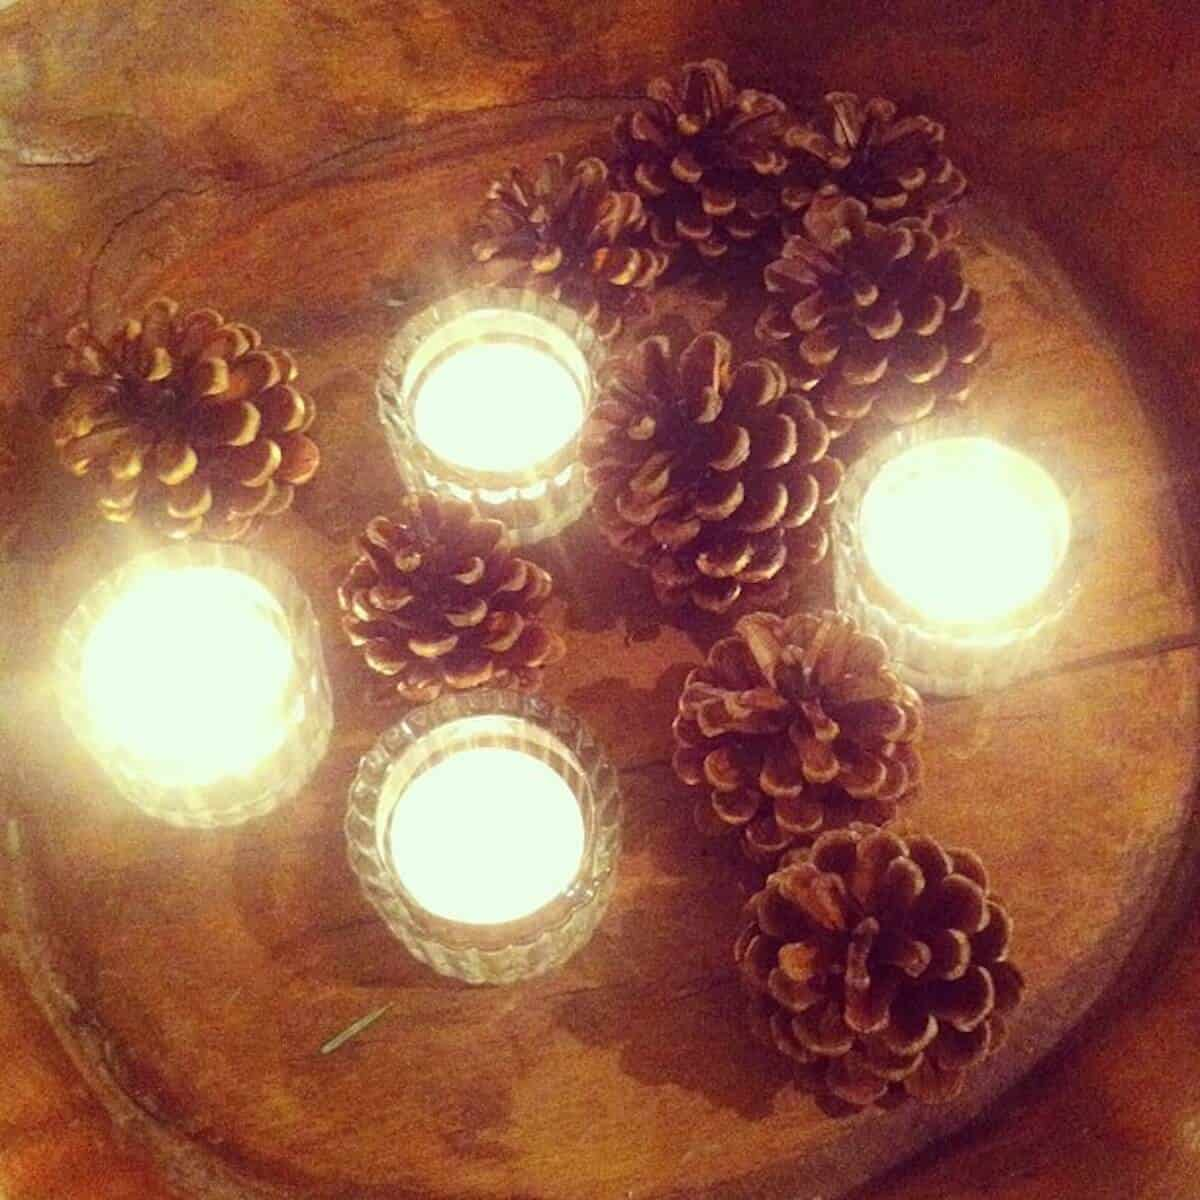 Natural Christmas Crafts & Decorations - Use pinecones and greenery